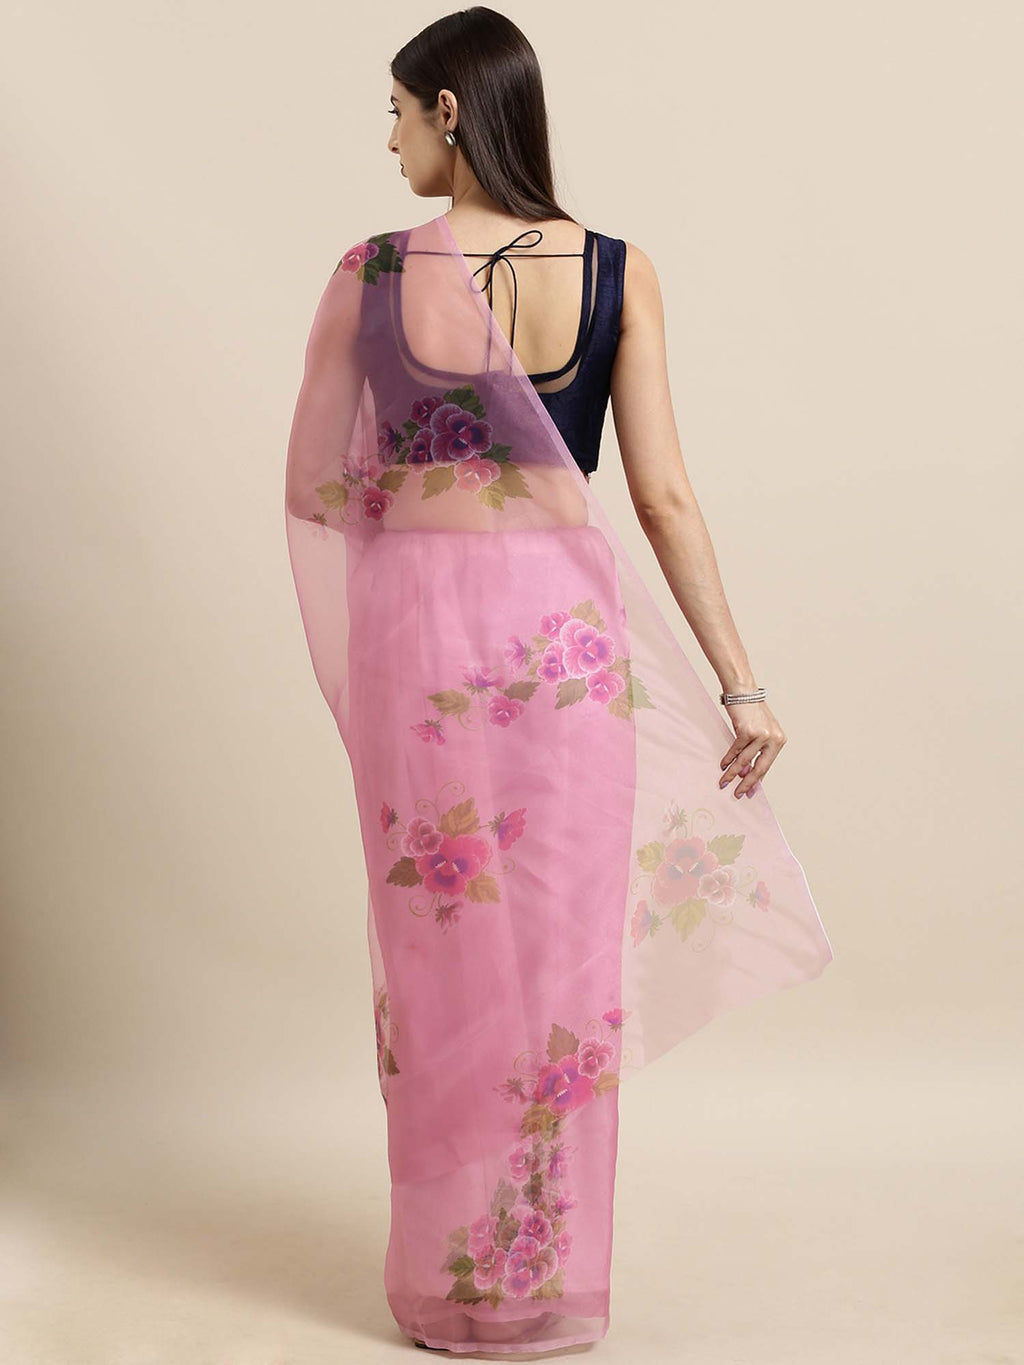 Pink Floral Digital Print Design Oraganza Saree With Poly Dupion Blouse - Riviera Closet